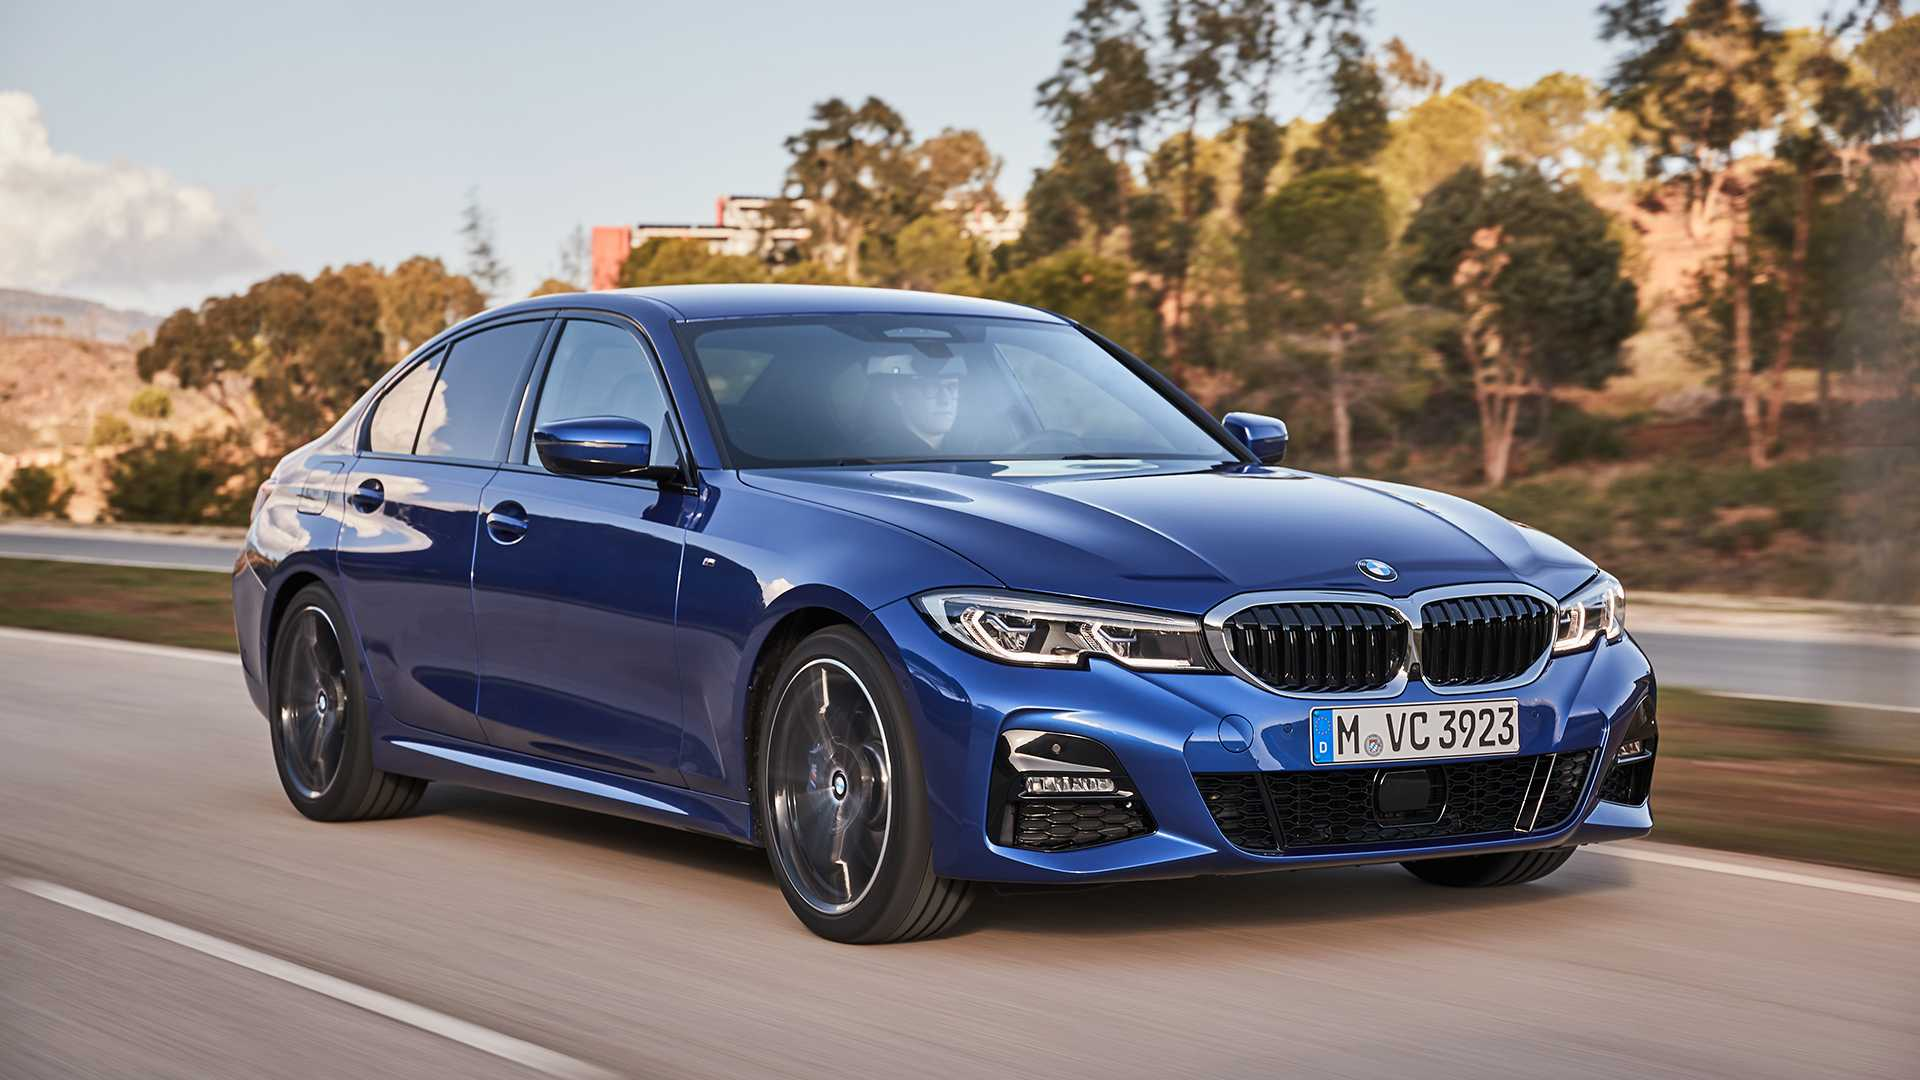 56 The Best 2019 BMW 3 Series Concept And Review